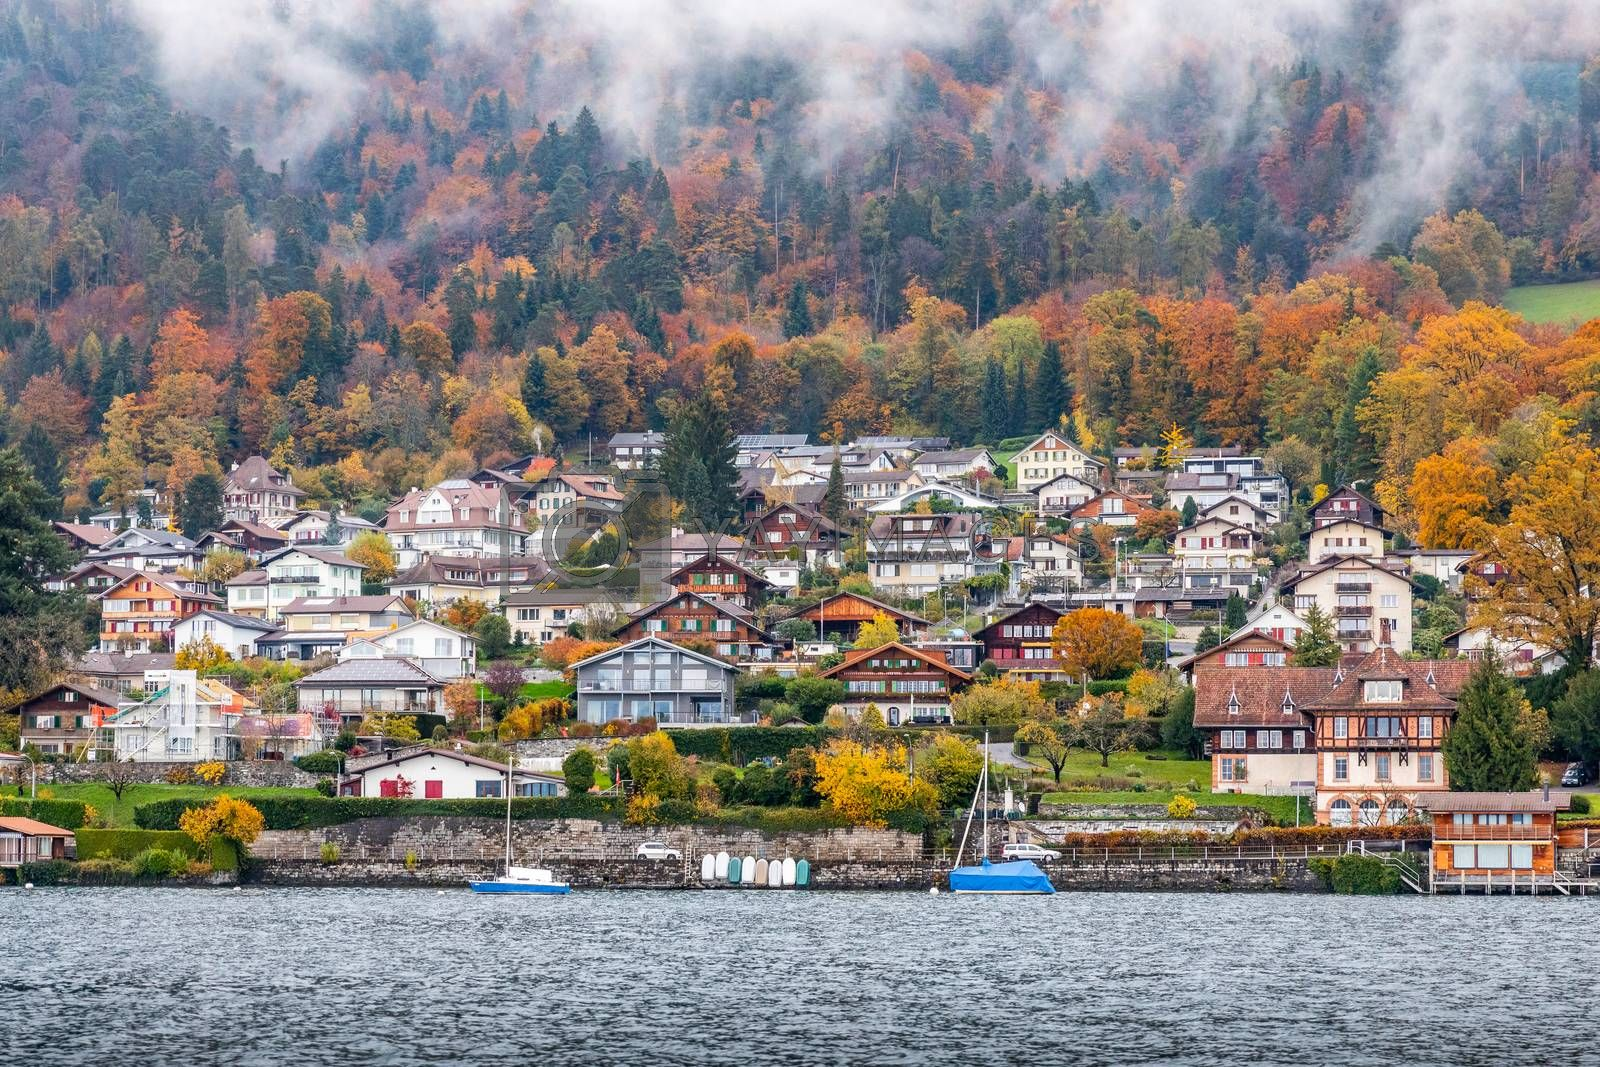 Snow-capped mountain with colorful of tree in Thun lake, Interlaken, Switzerland. Early winter of November 2019, snow start to cover mountain area with cold temperature.